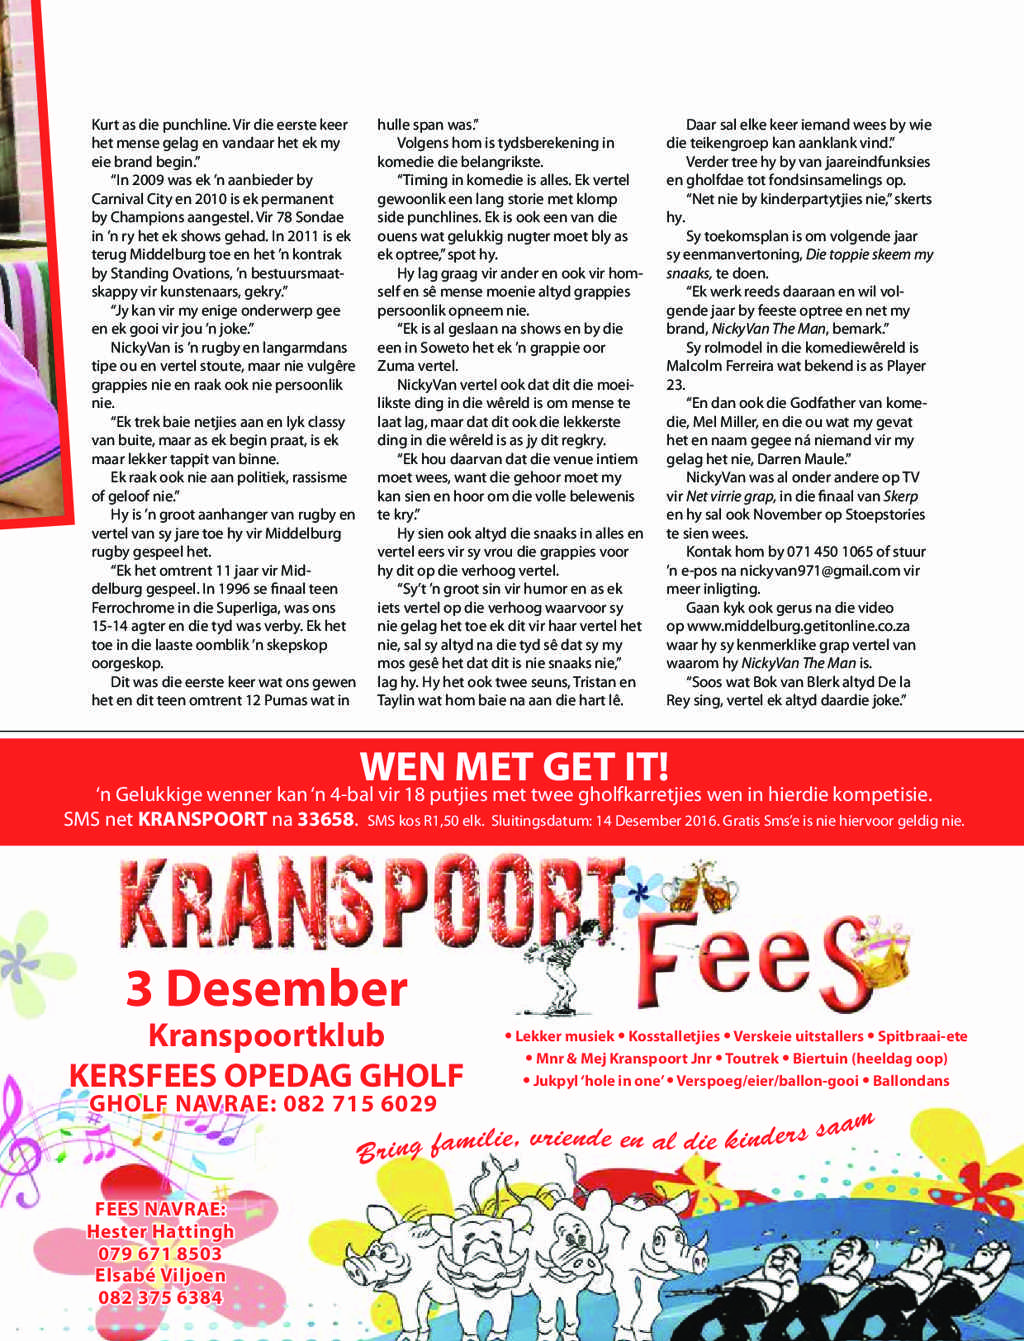 get-it-middelburg-december-2016-epapers-page-27